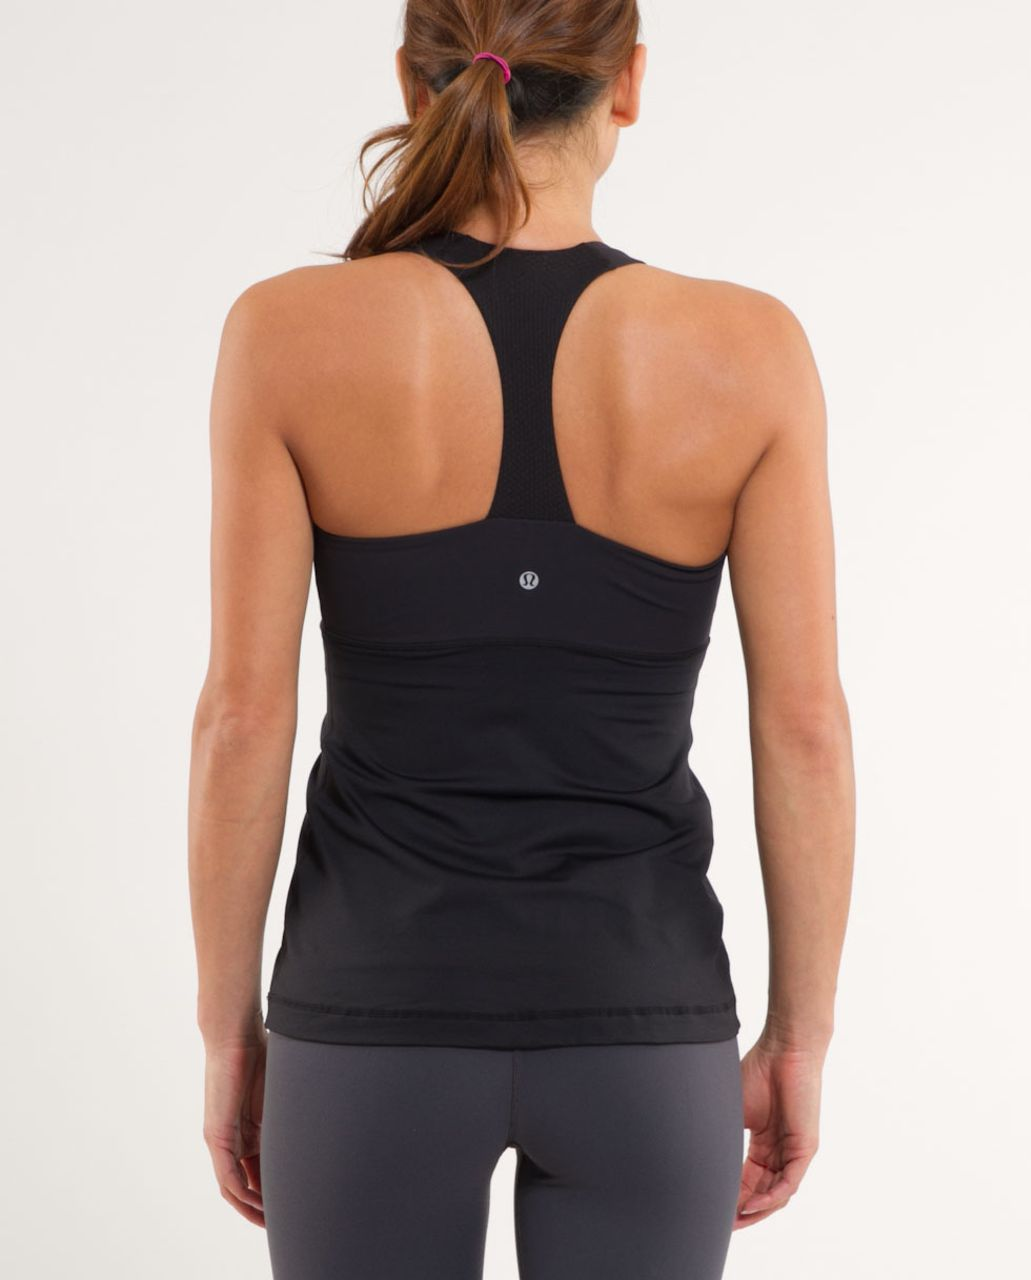 Lululemon Deep Breath Tank *luxtreme (First Release) - Black